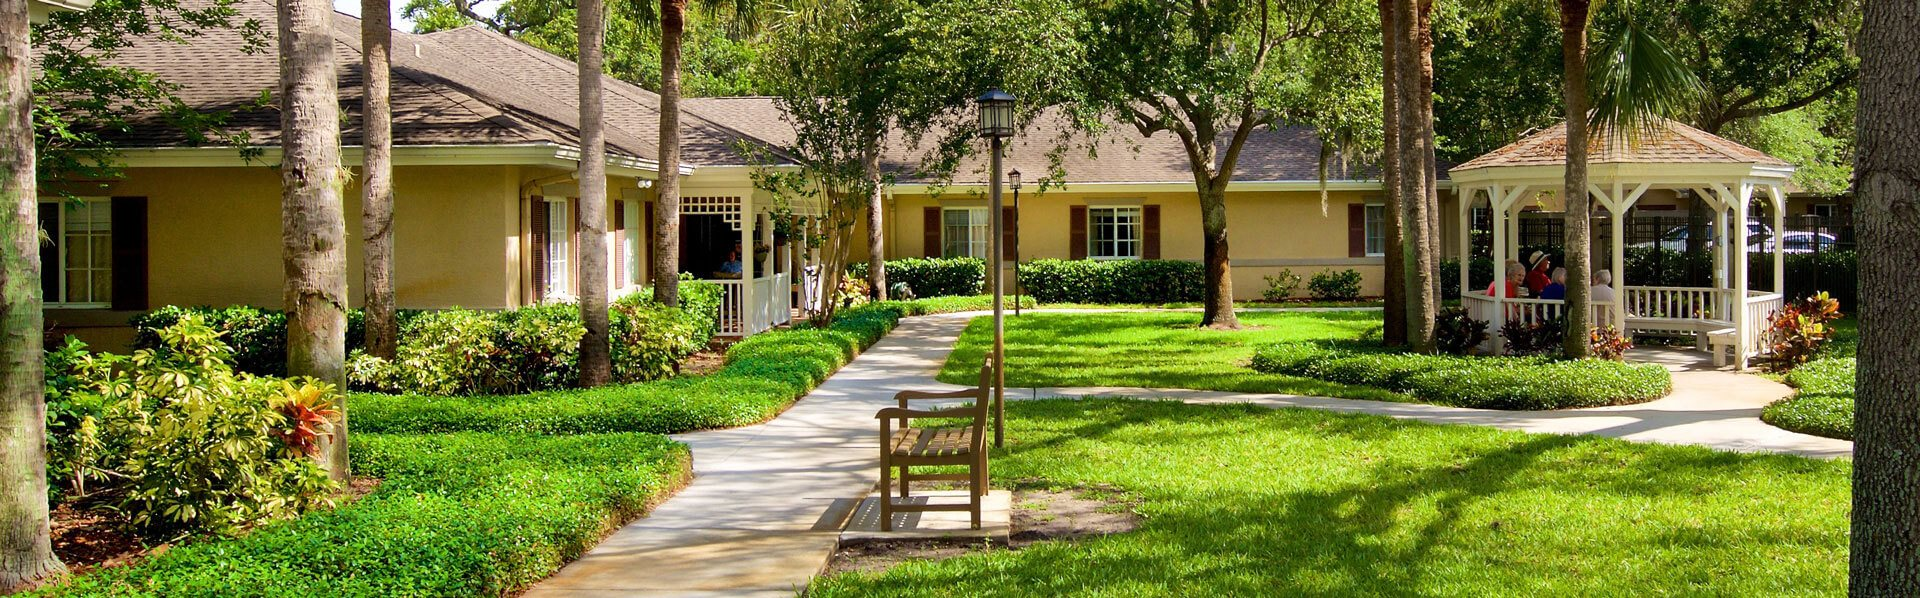 Picturesque Garden Setting  at Pacifica Senior Living Belleair, Clearwater, 33756